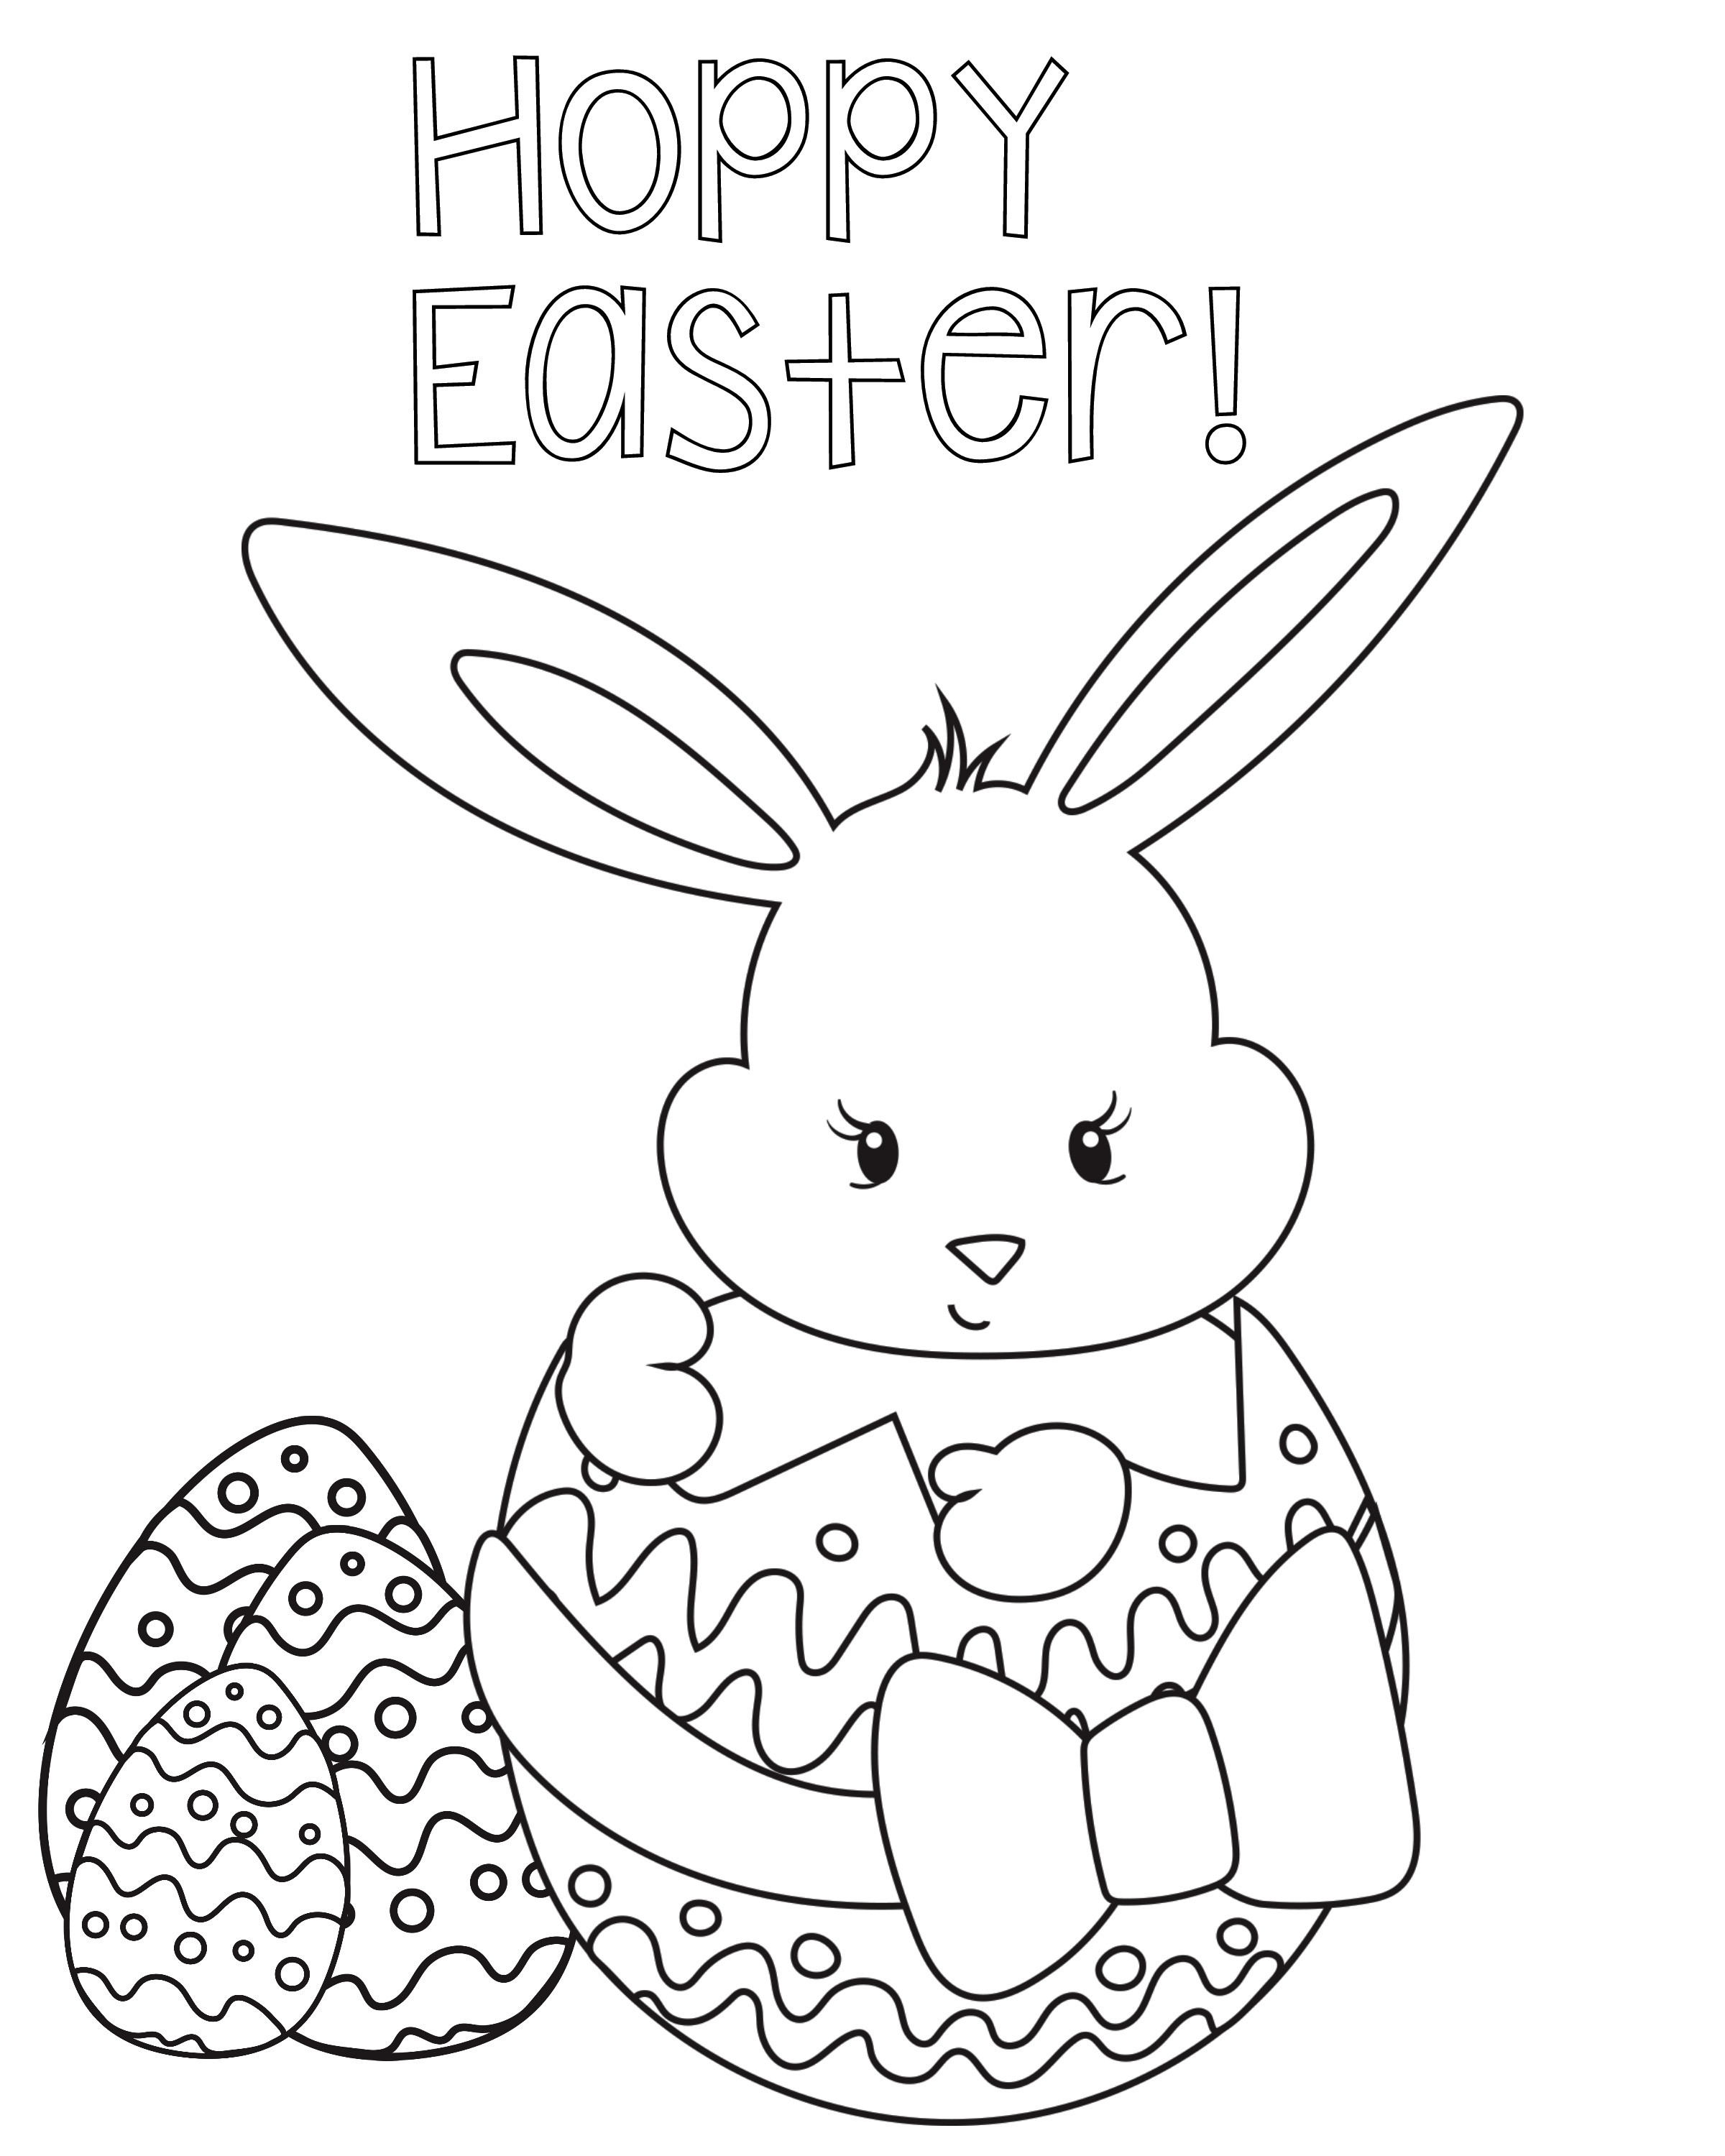 Spring Coloring Pages Free Printable  Happy Easter Coloring Pages Best Coloring Pages For Kids